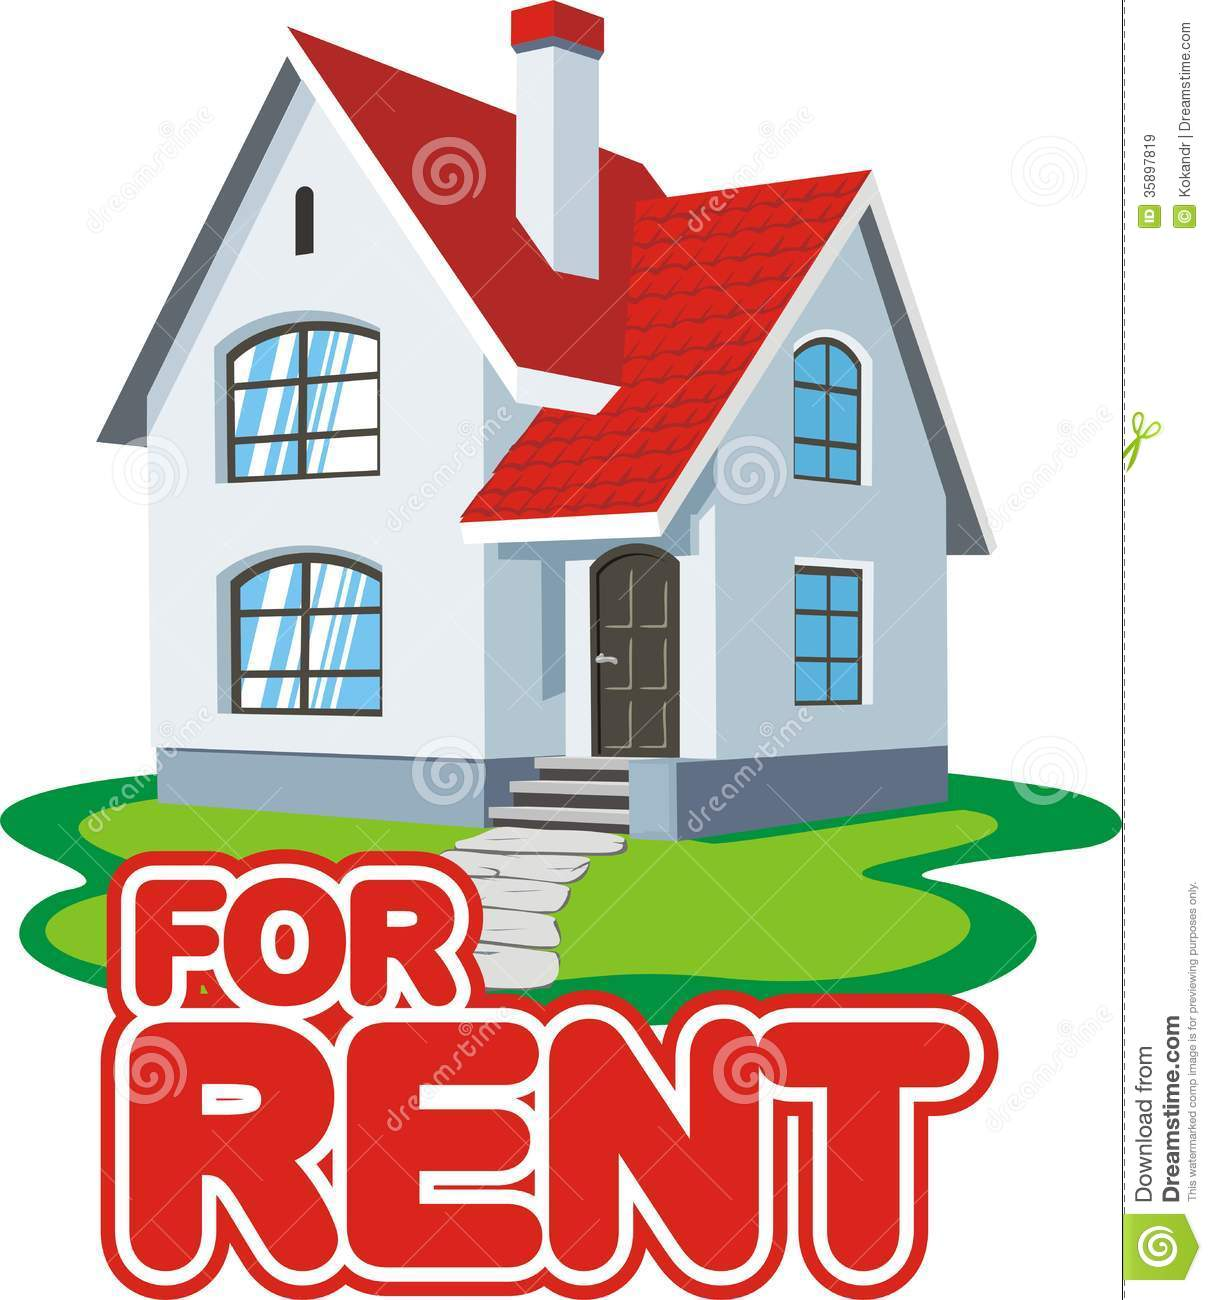 House for rent clipart.